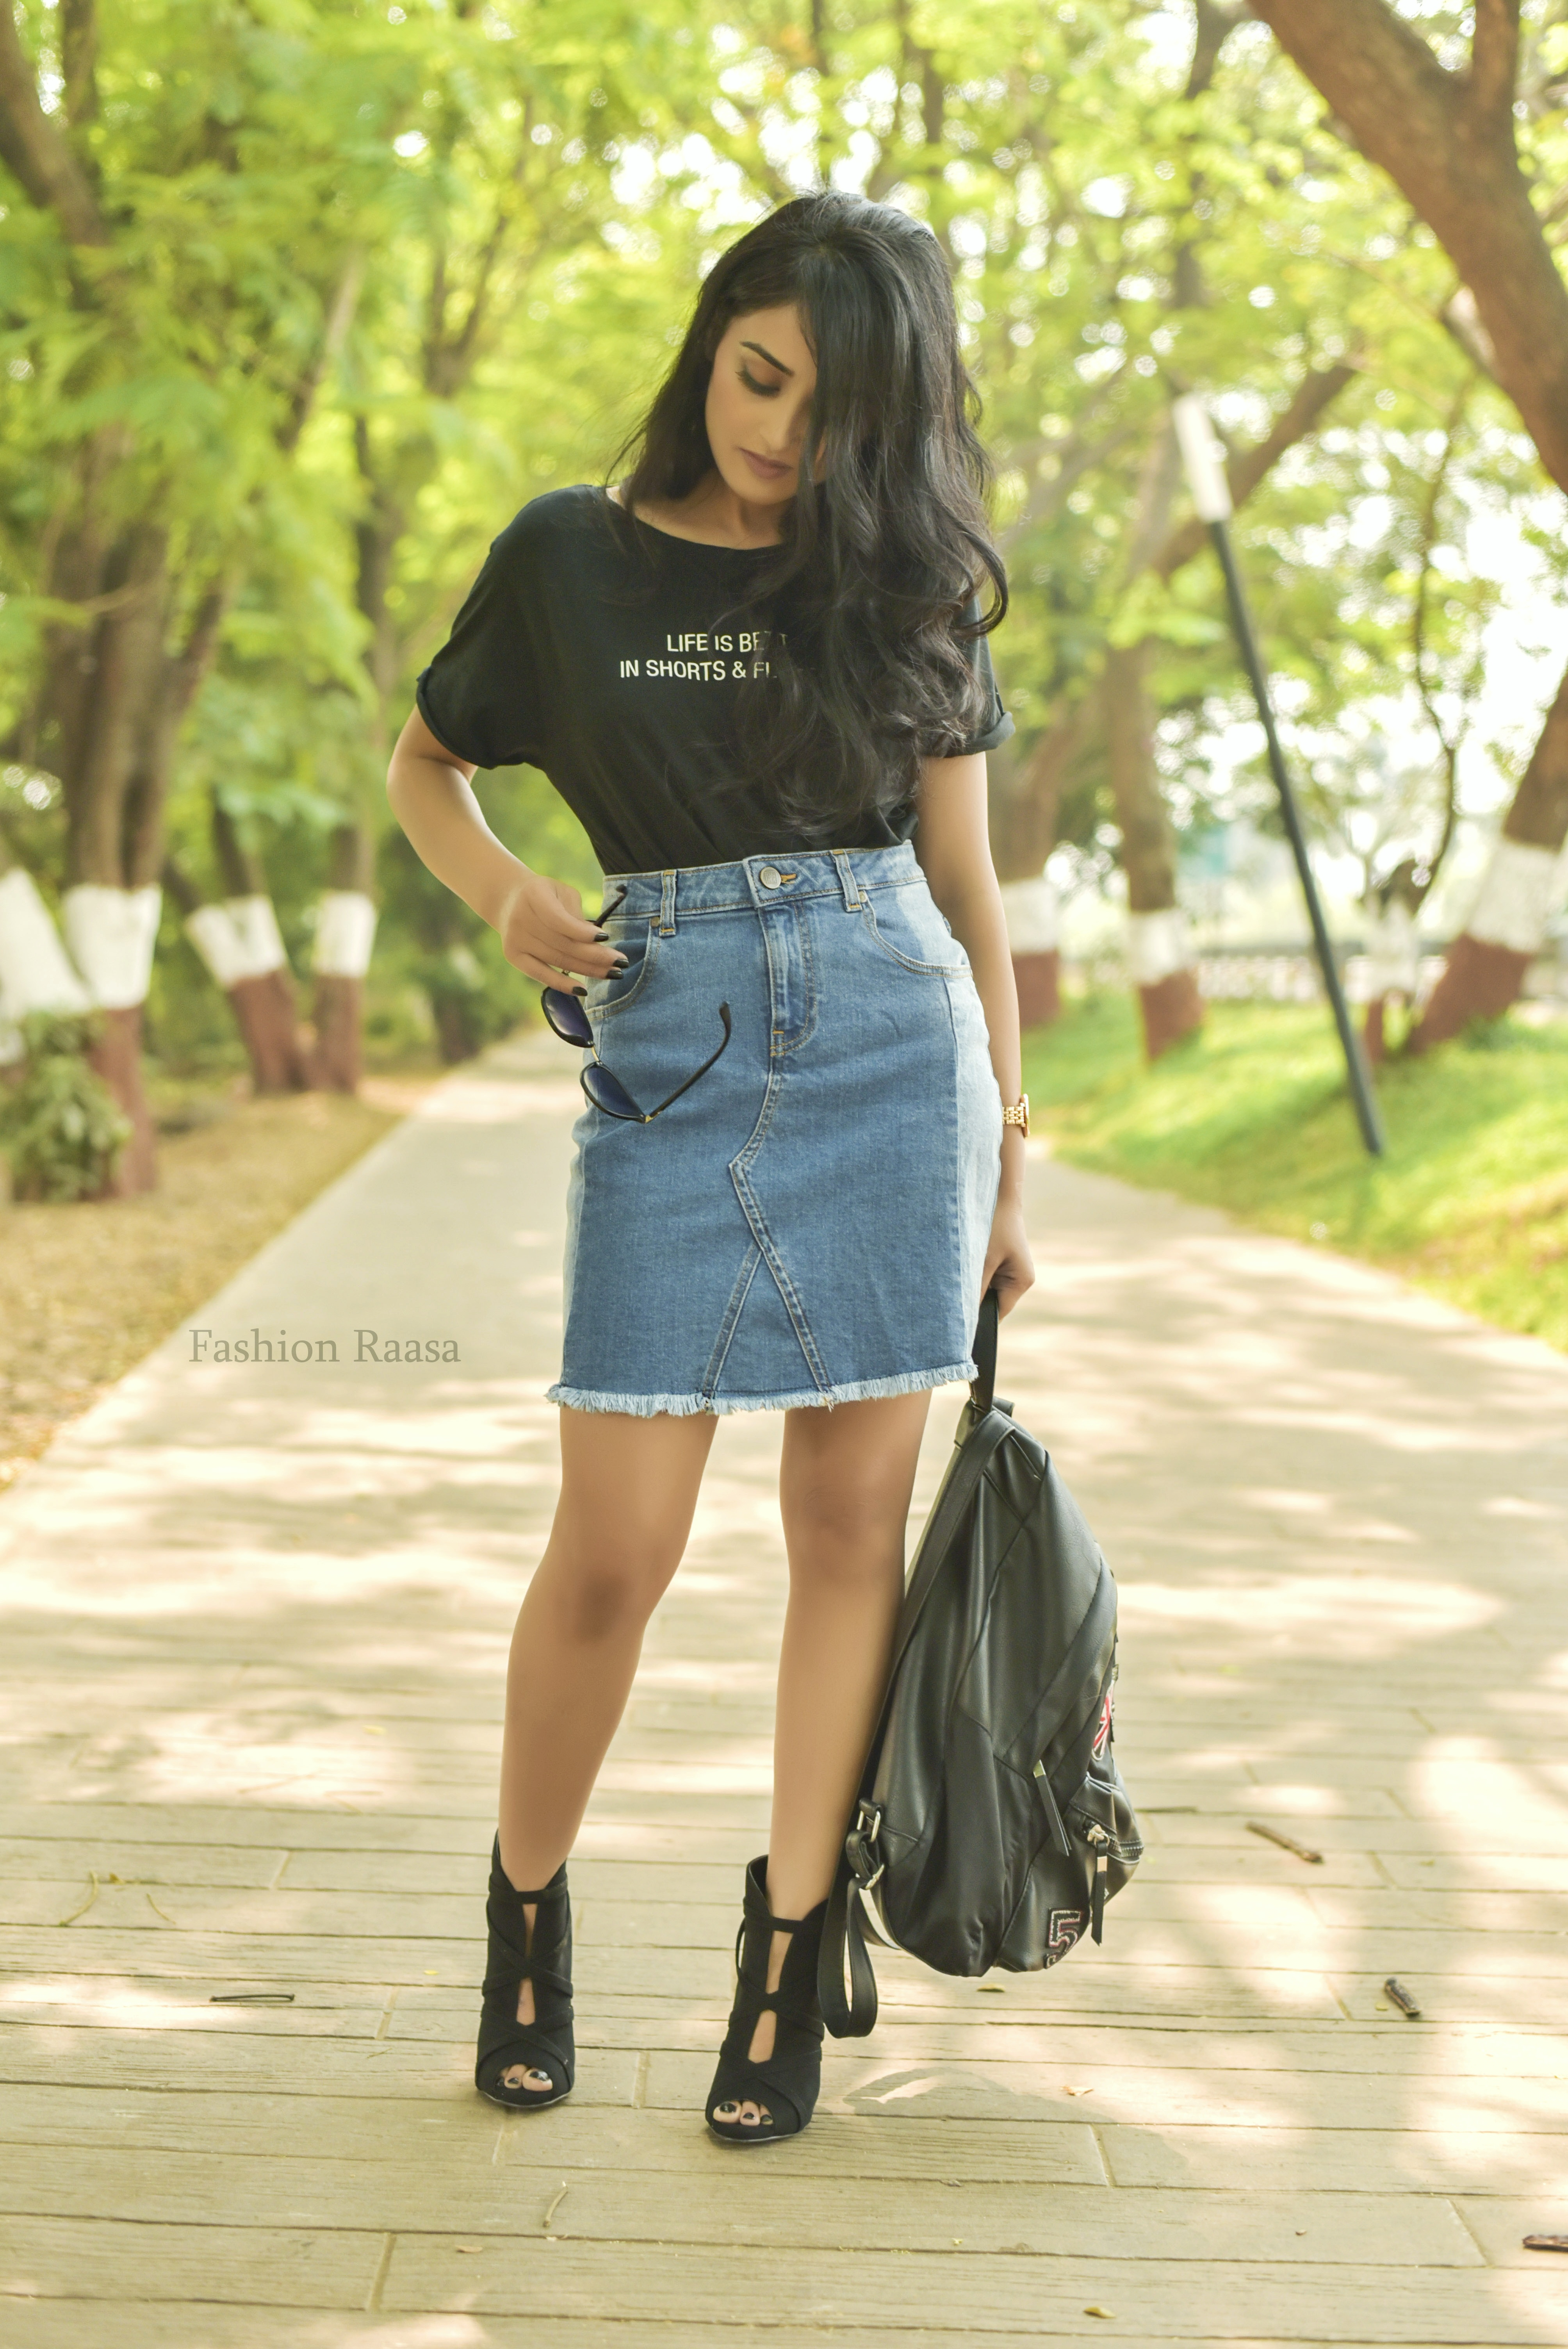 blue denim skirt with a black tee or black crop top